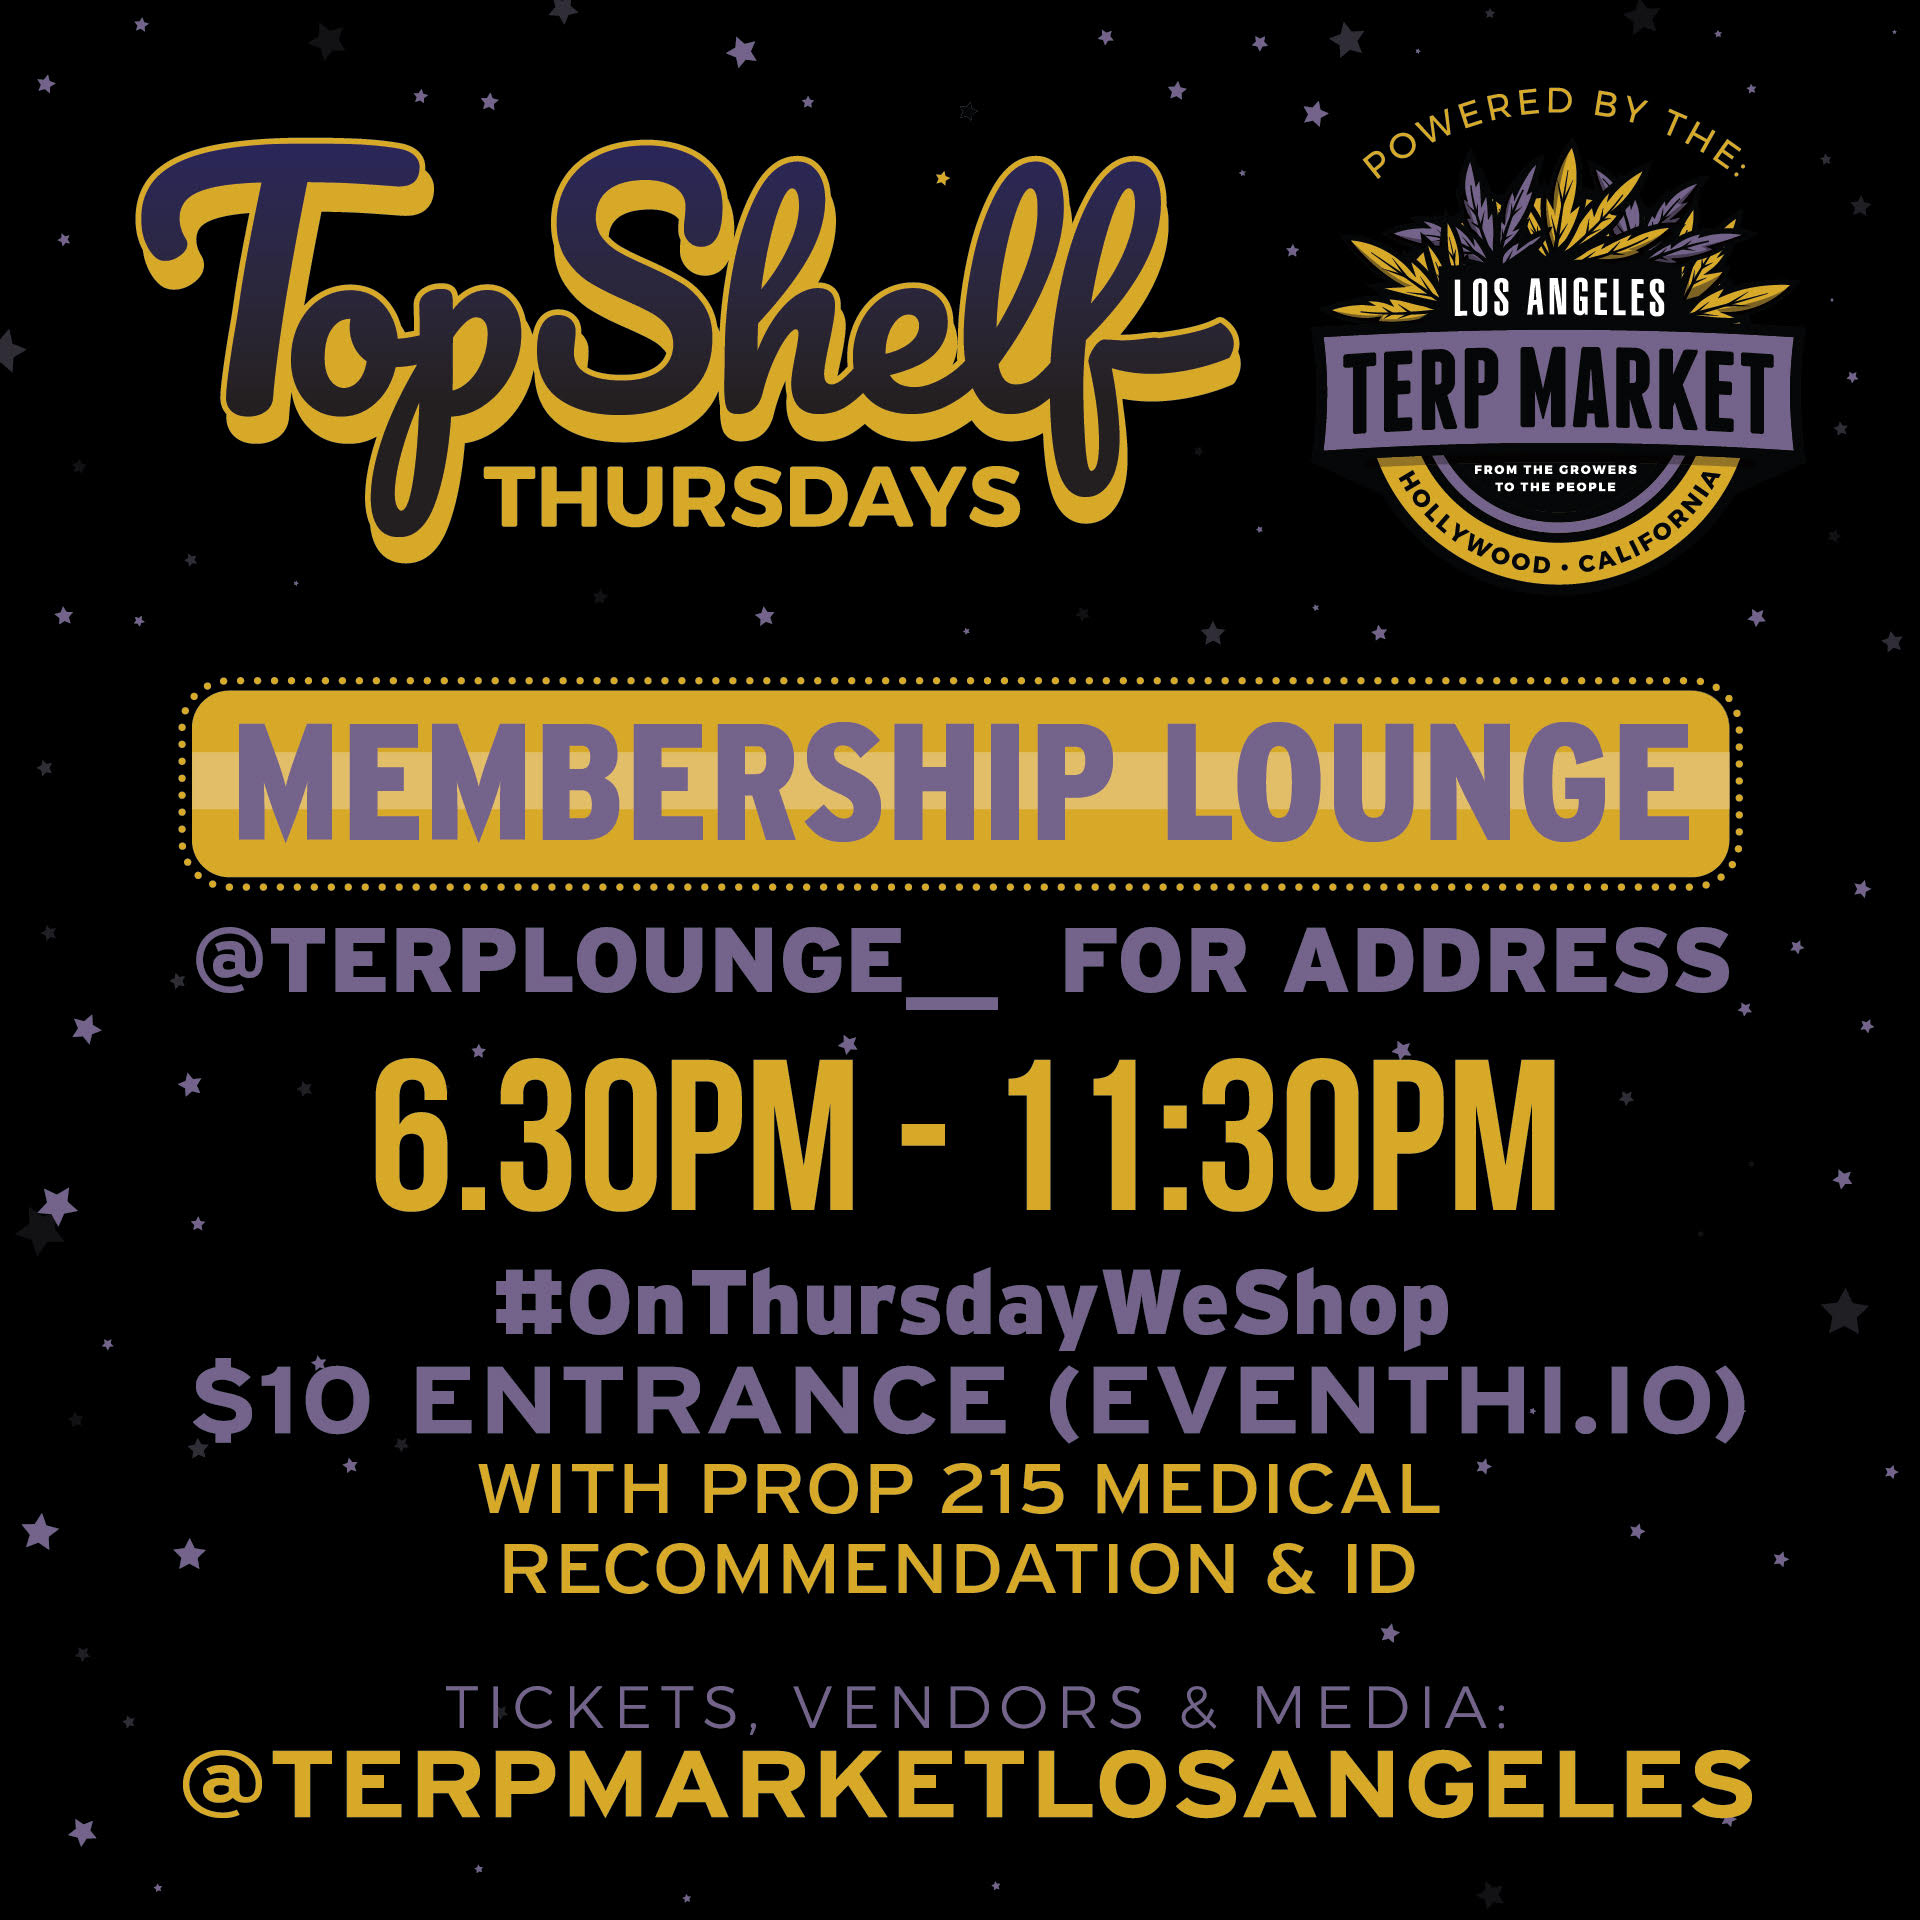 Terp Market Top Shelf Thursday Los Angeles 5/16